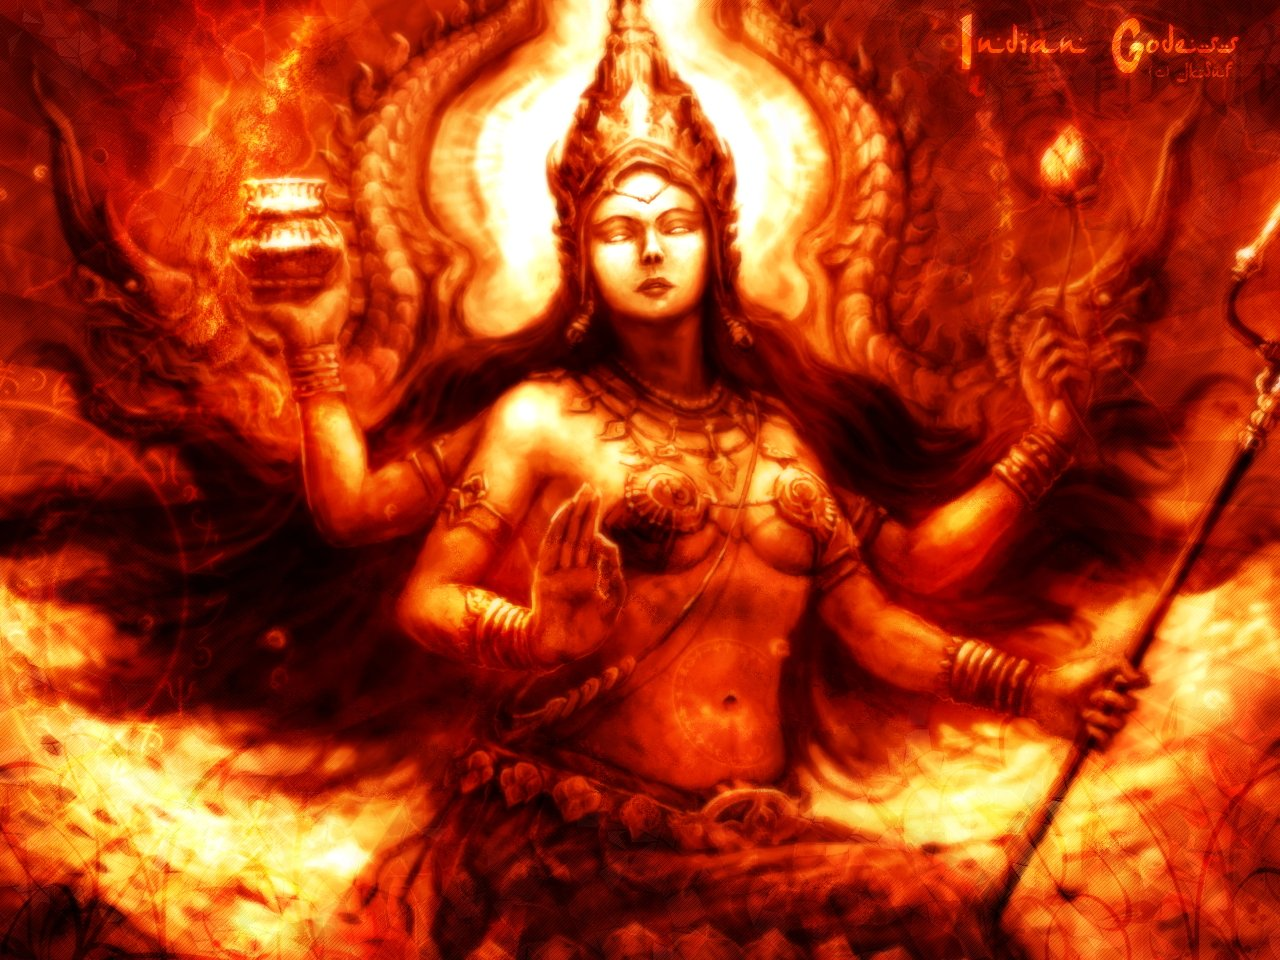 Wallpapers Fantasy and Science Fiction Gods - Goddesses Indian Godess